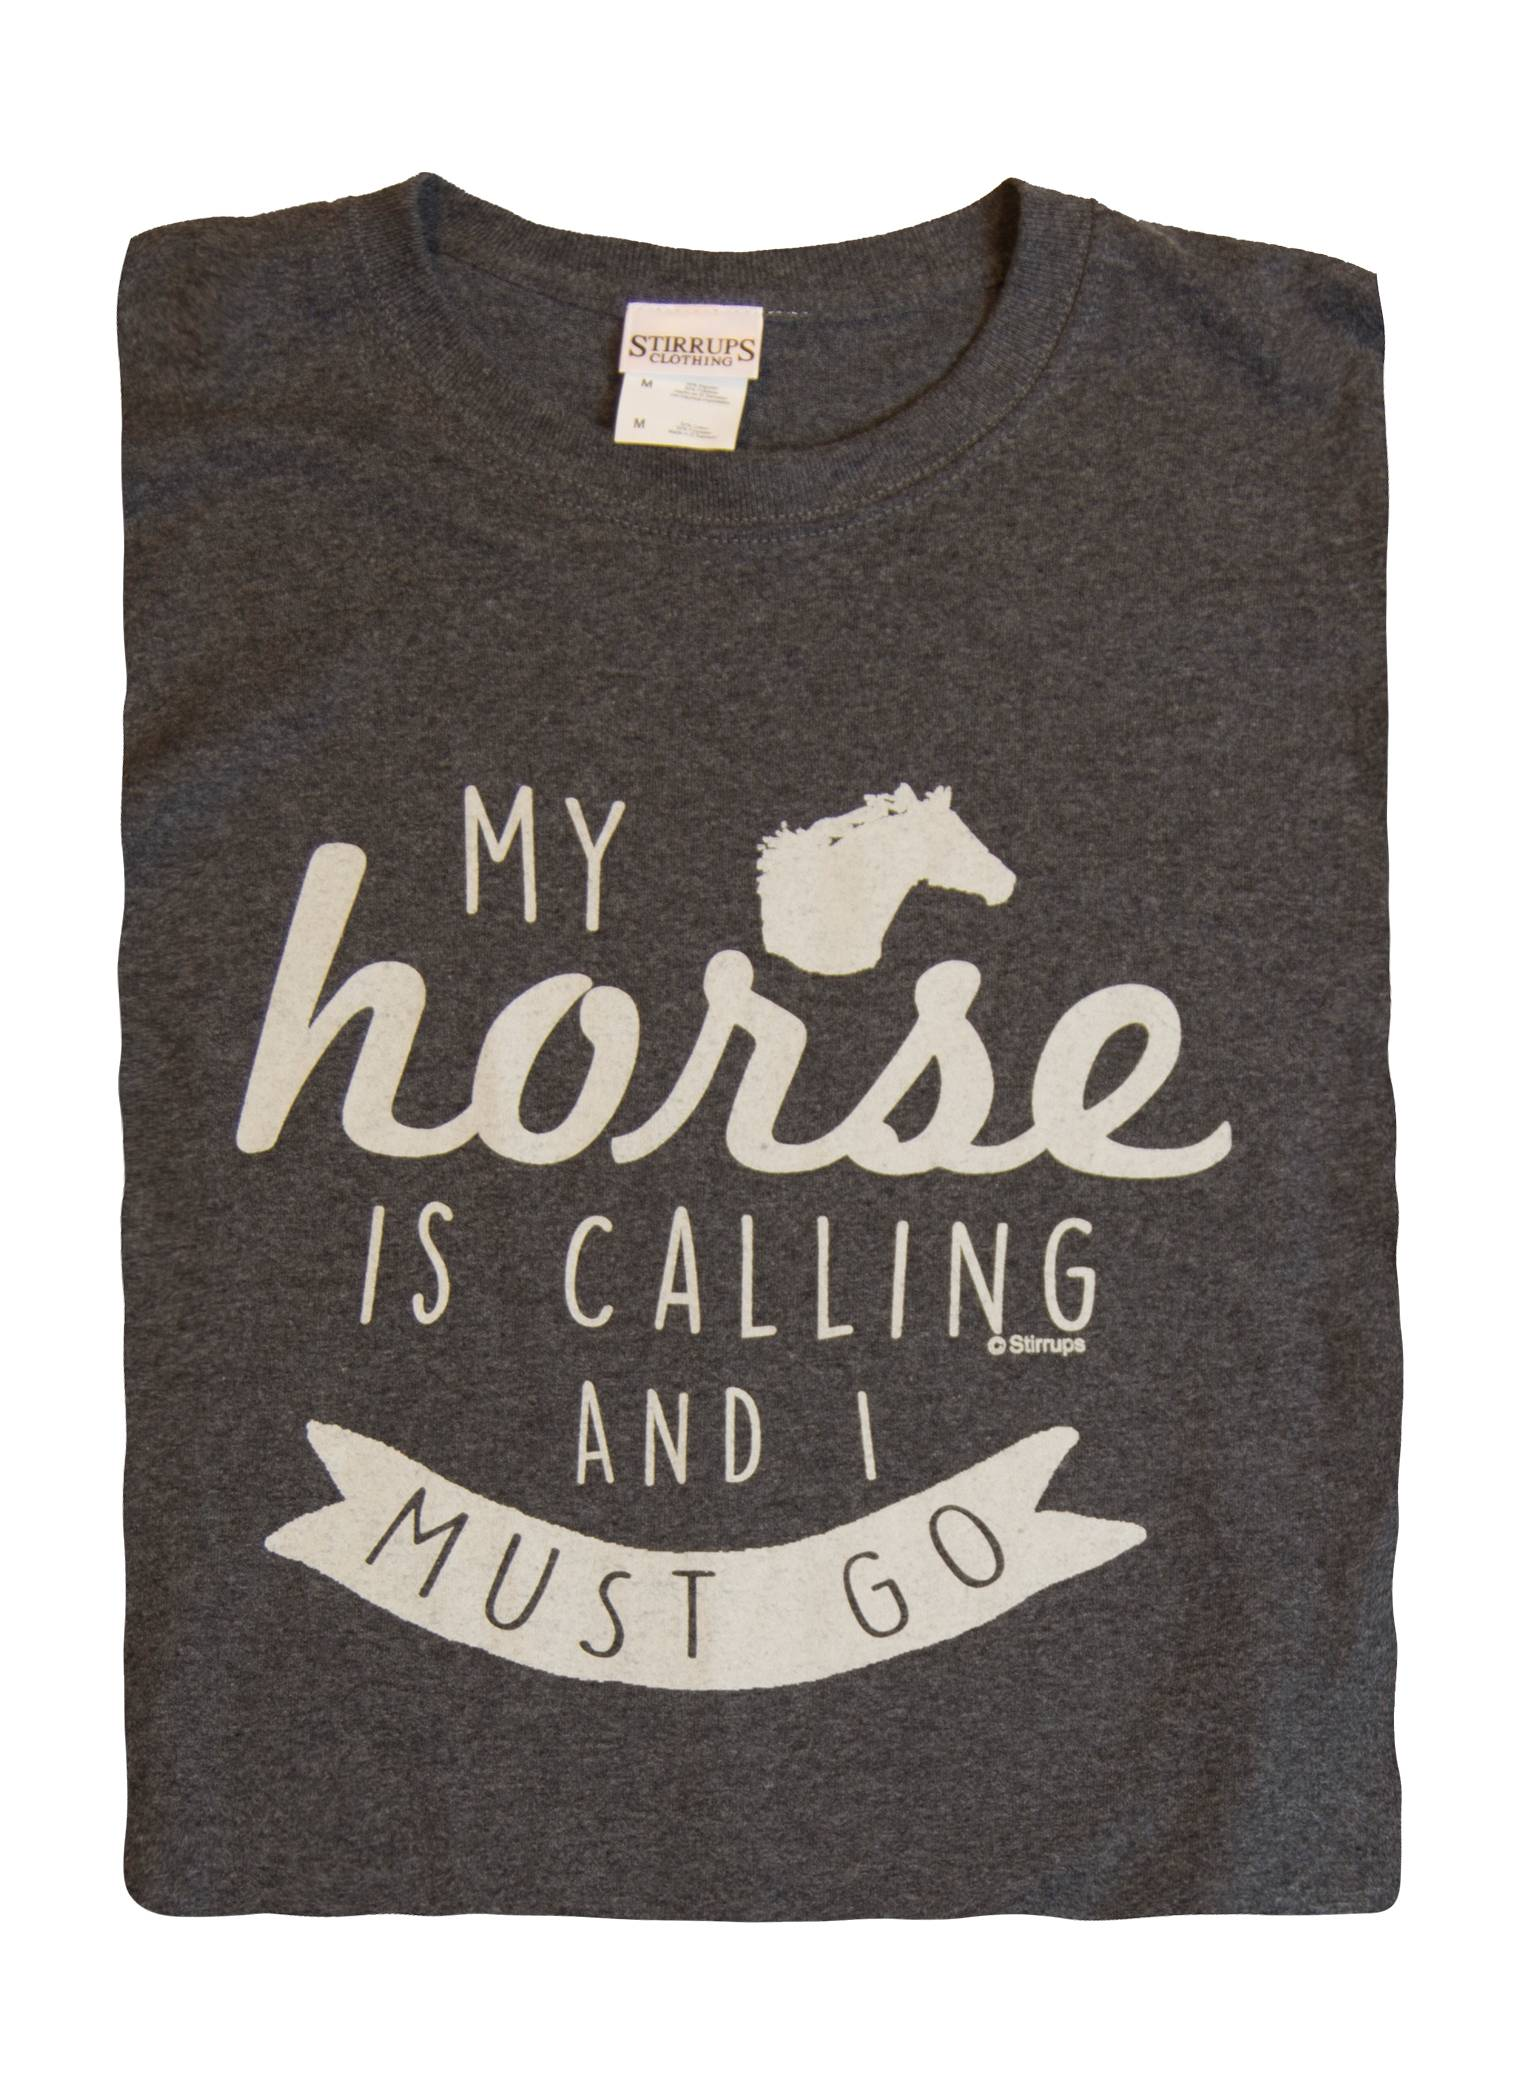 Stirrups My Horse Is Calling Cotton Long Sleeve Crewneck Tee - Ladies